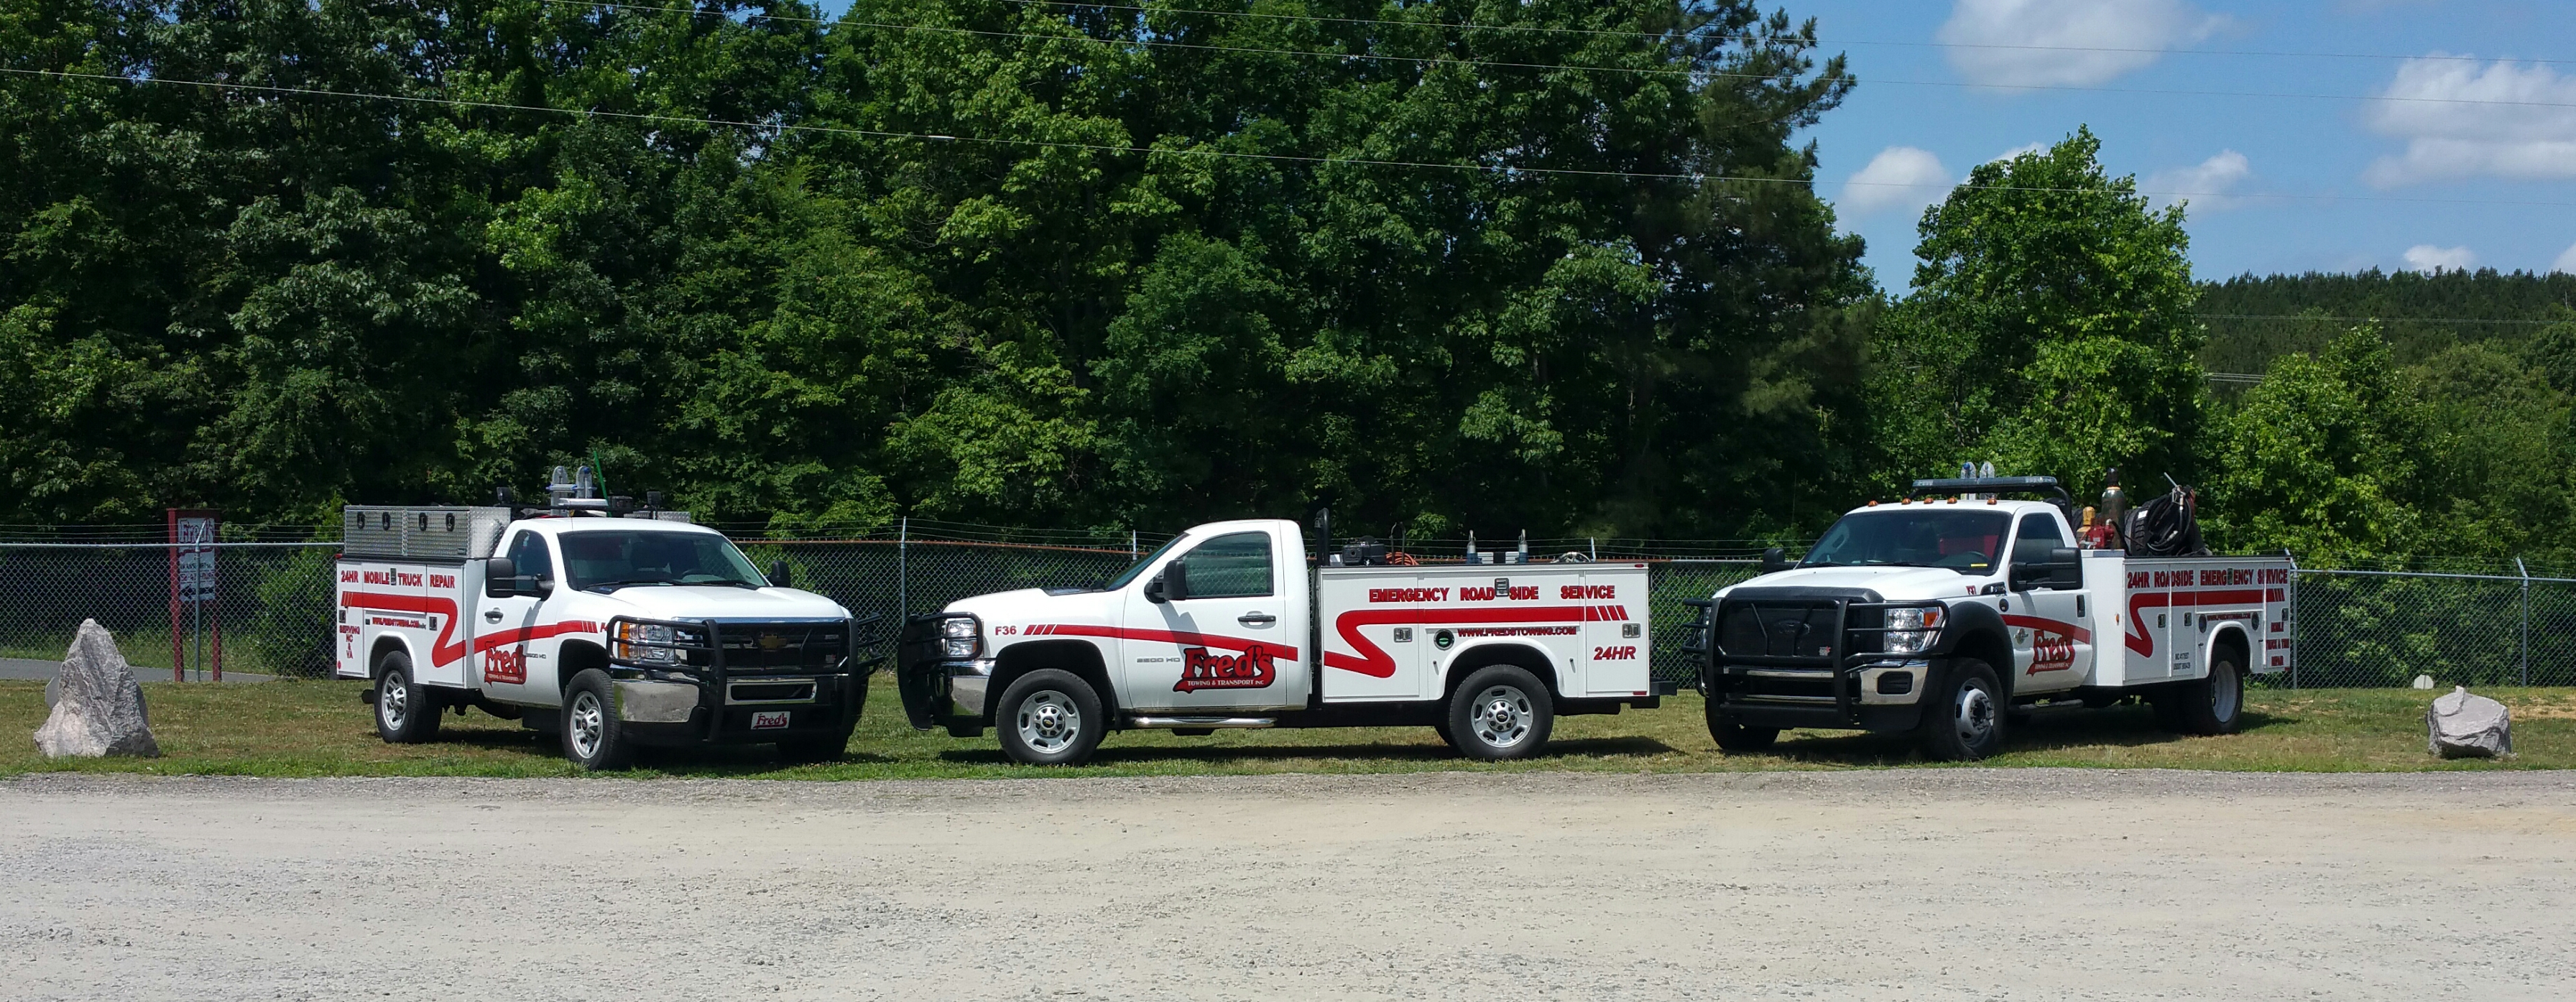 Fred's Towing & Transport Coupons near me in Youngsville ...